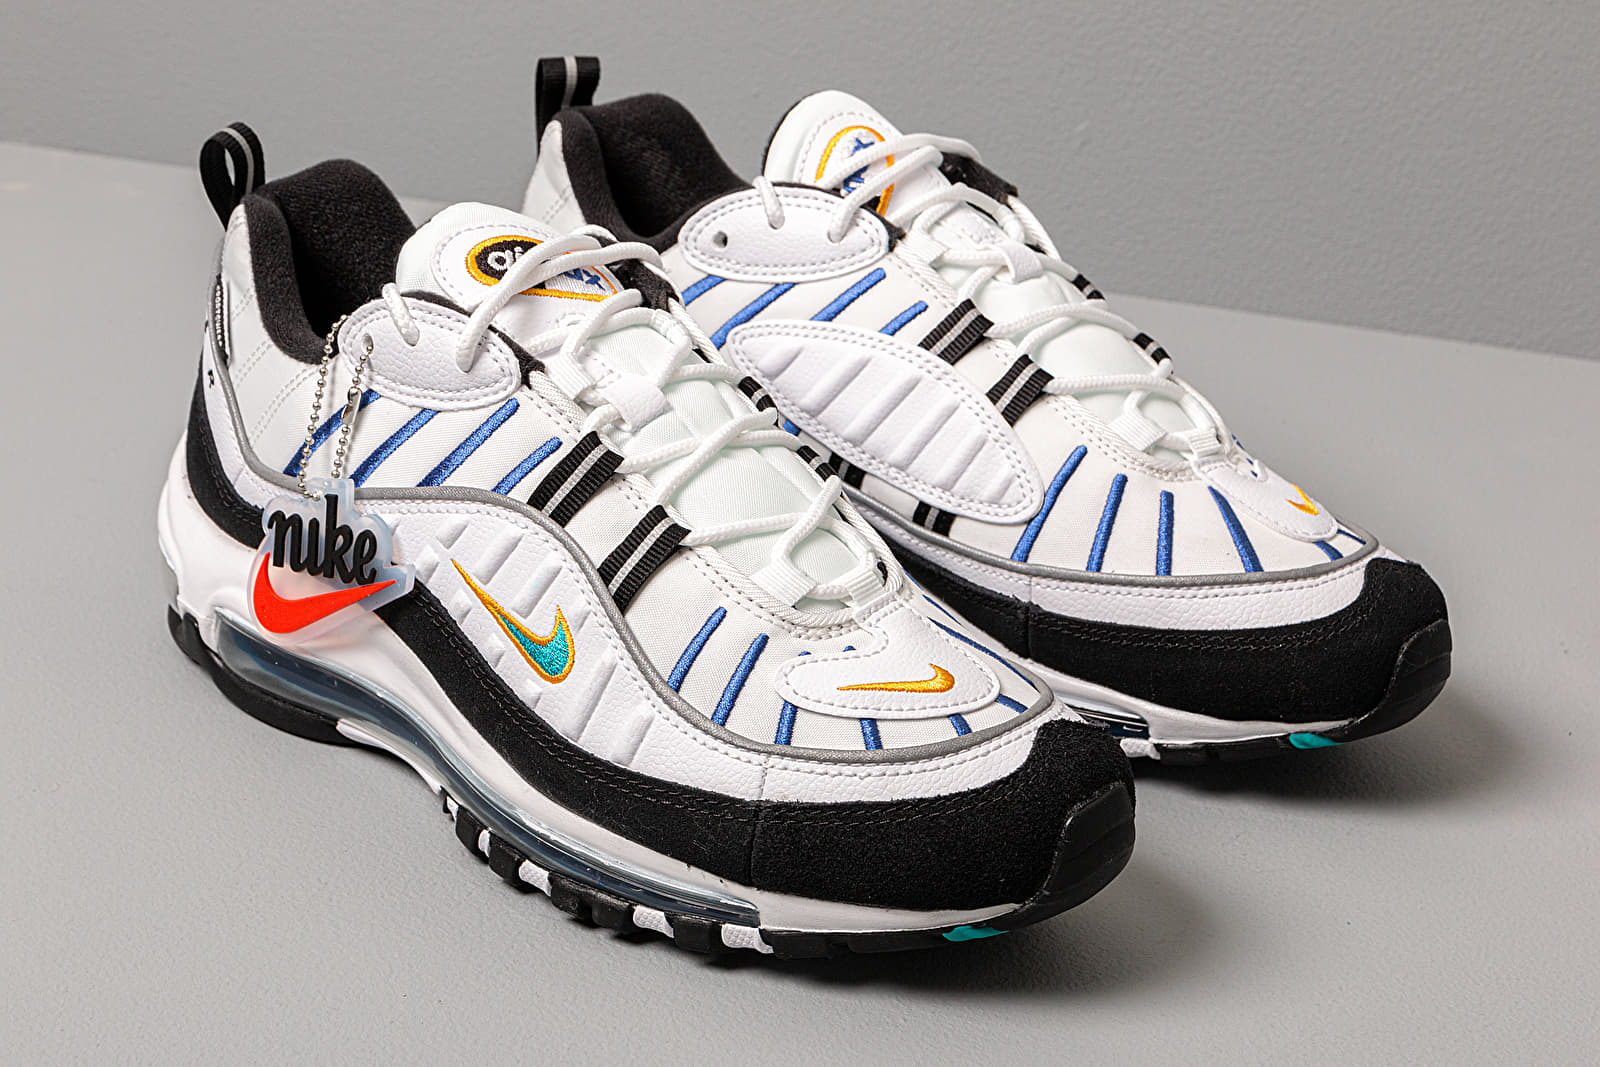 Nike Wmns Air Max 98 Premium White Teal Nebula University Gold Black | Footshop